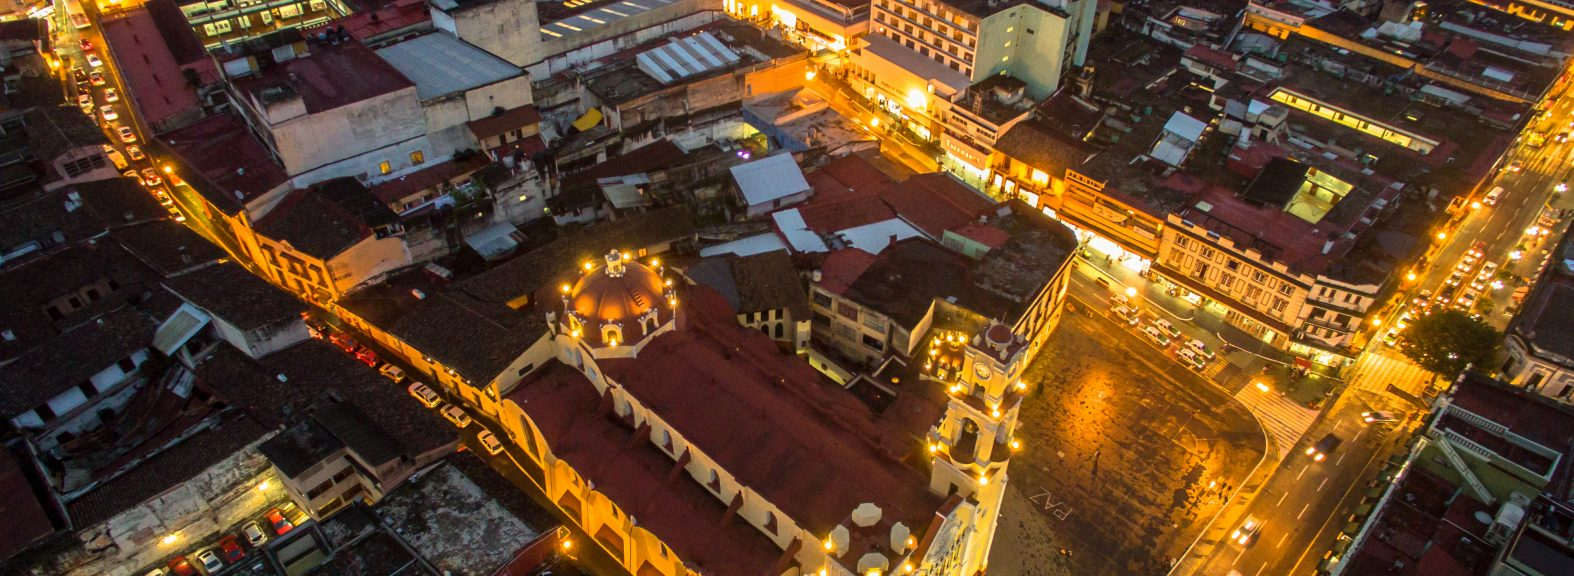 Aerial view of downtown Xalapa